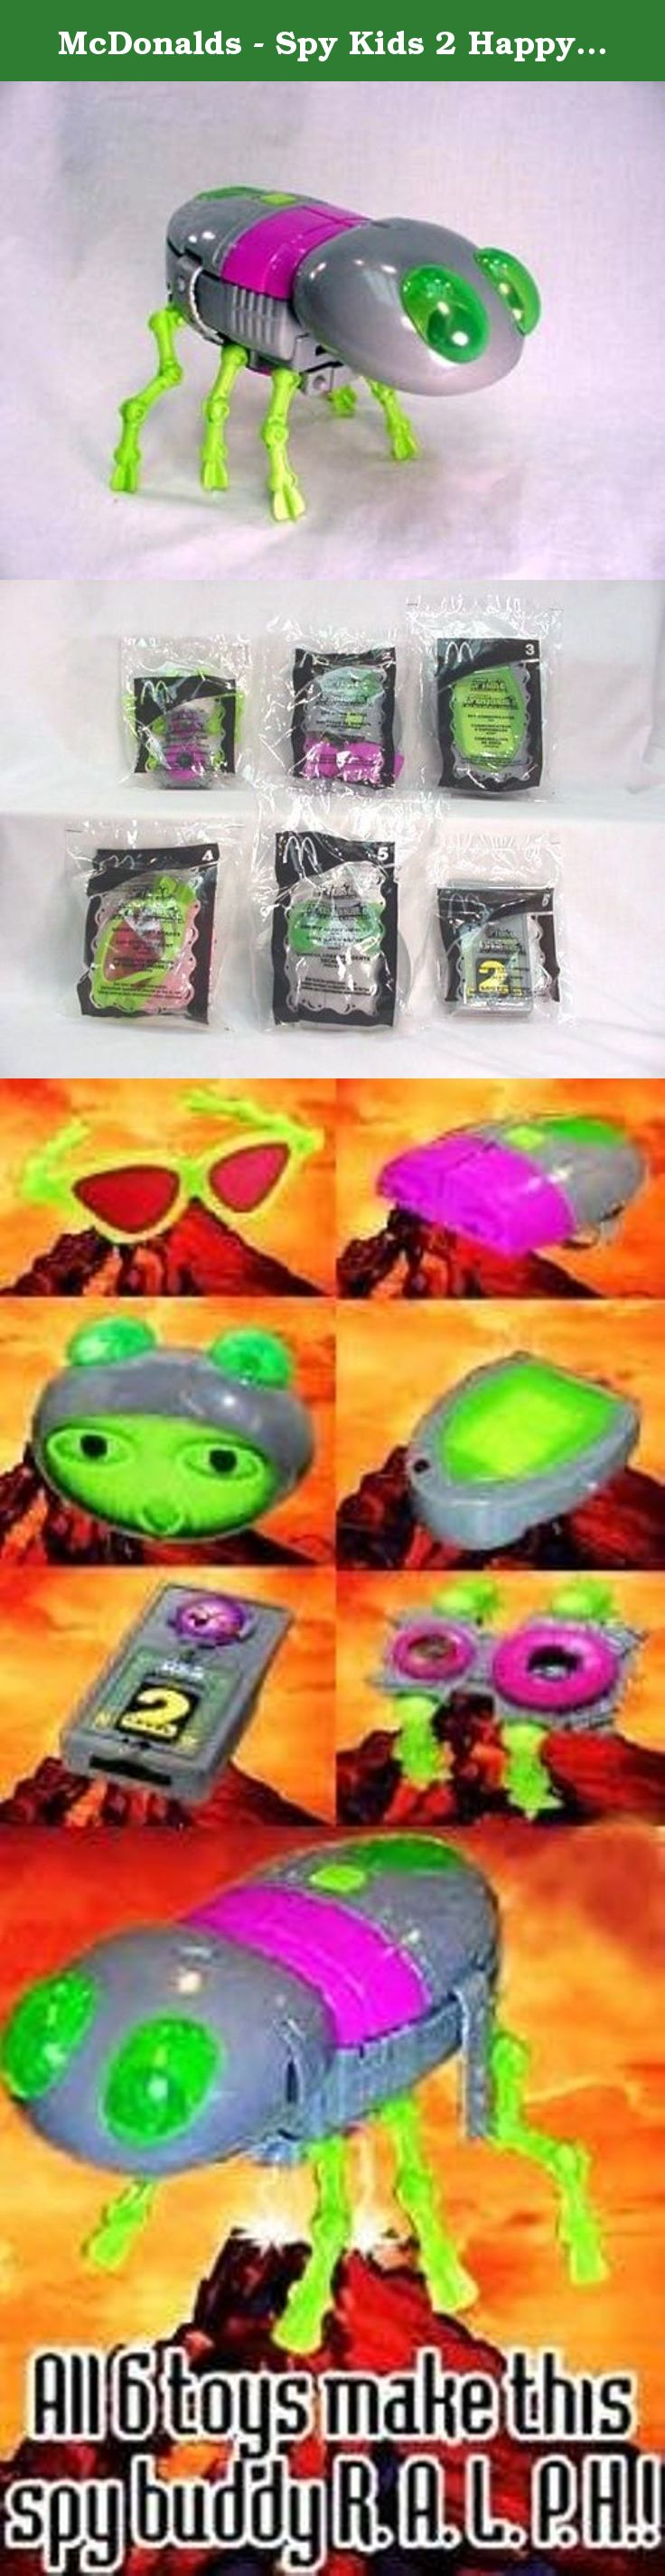 McDonalds Spy Kids 2 Happy Meal Set 2002 During August 2002